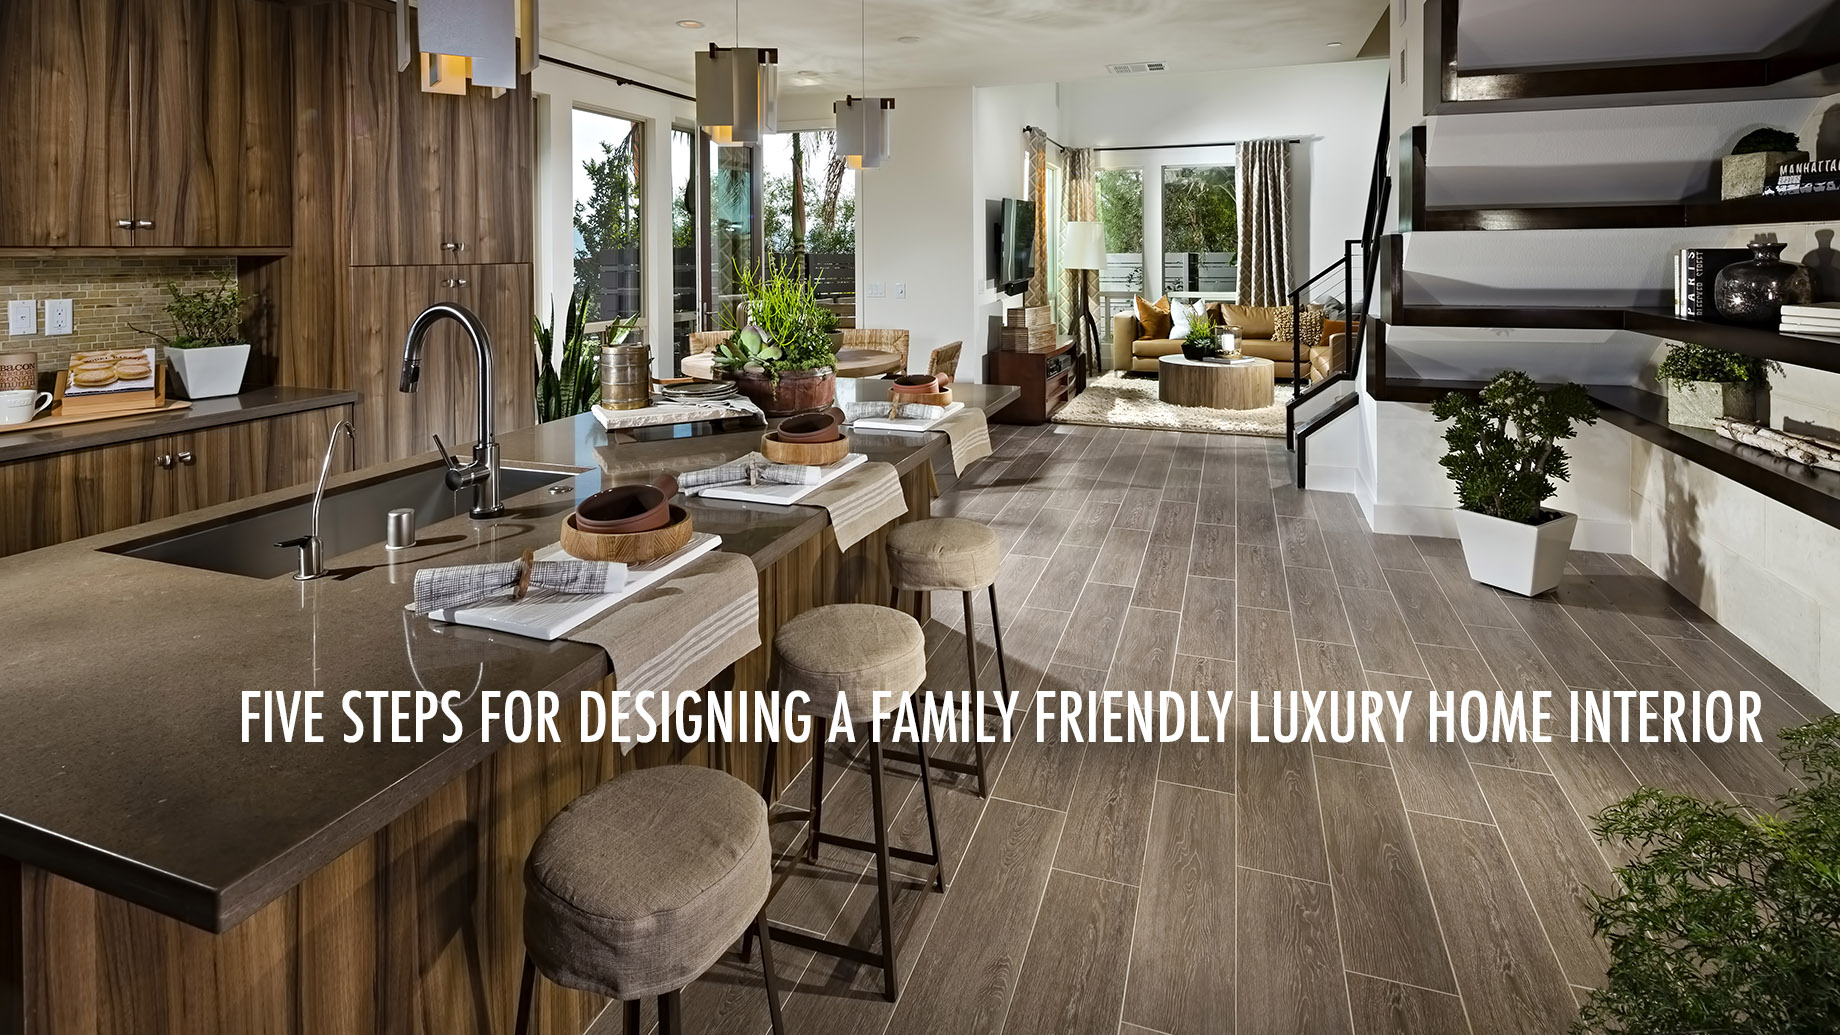 Five Steps For Designing a Family Friendly Luxury Home Interior